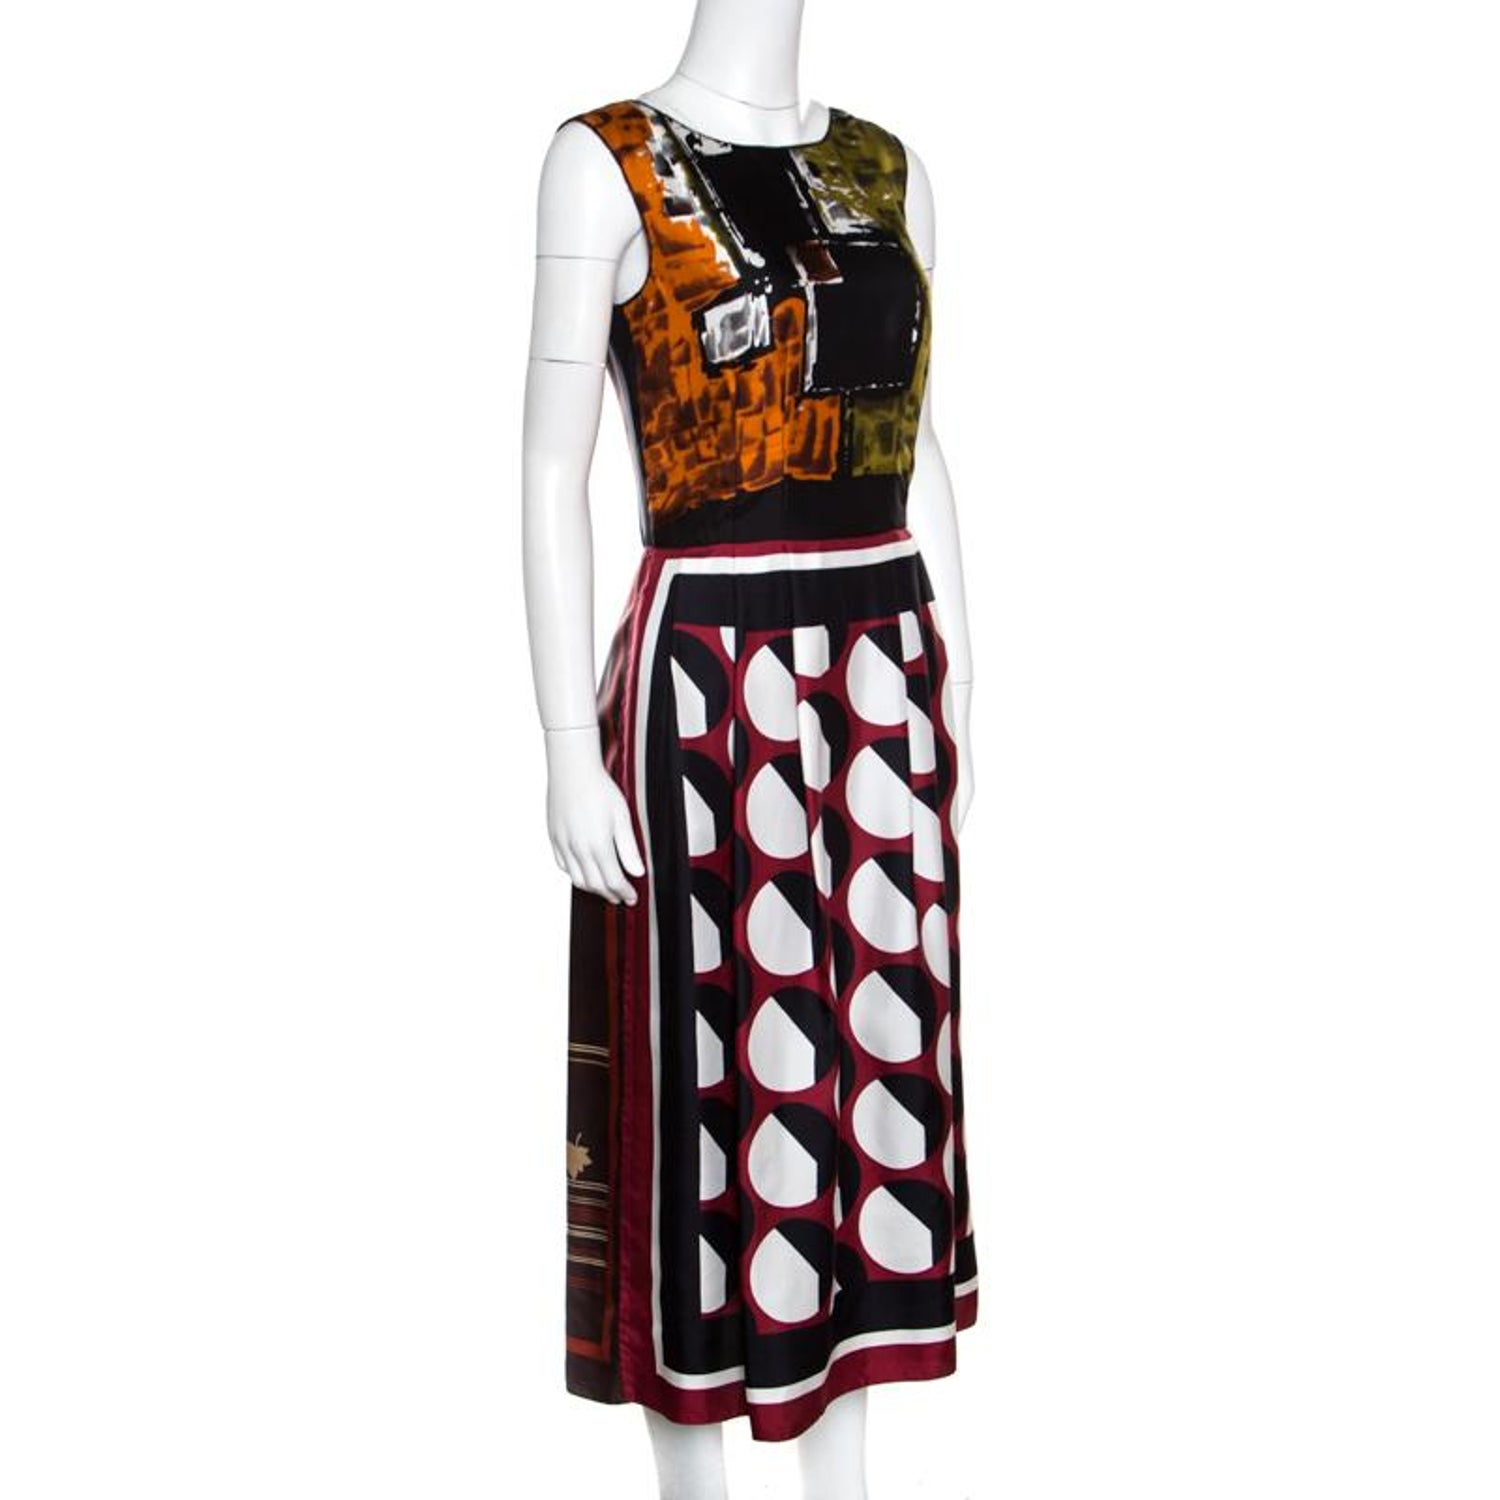 bf331975 Dolce and Gabbana Multilcolor Abstract Printed Silk Sleeveless Dress S For  Sale at 1stdibs